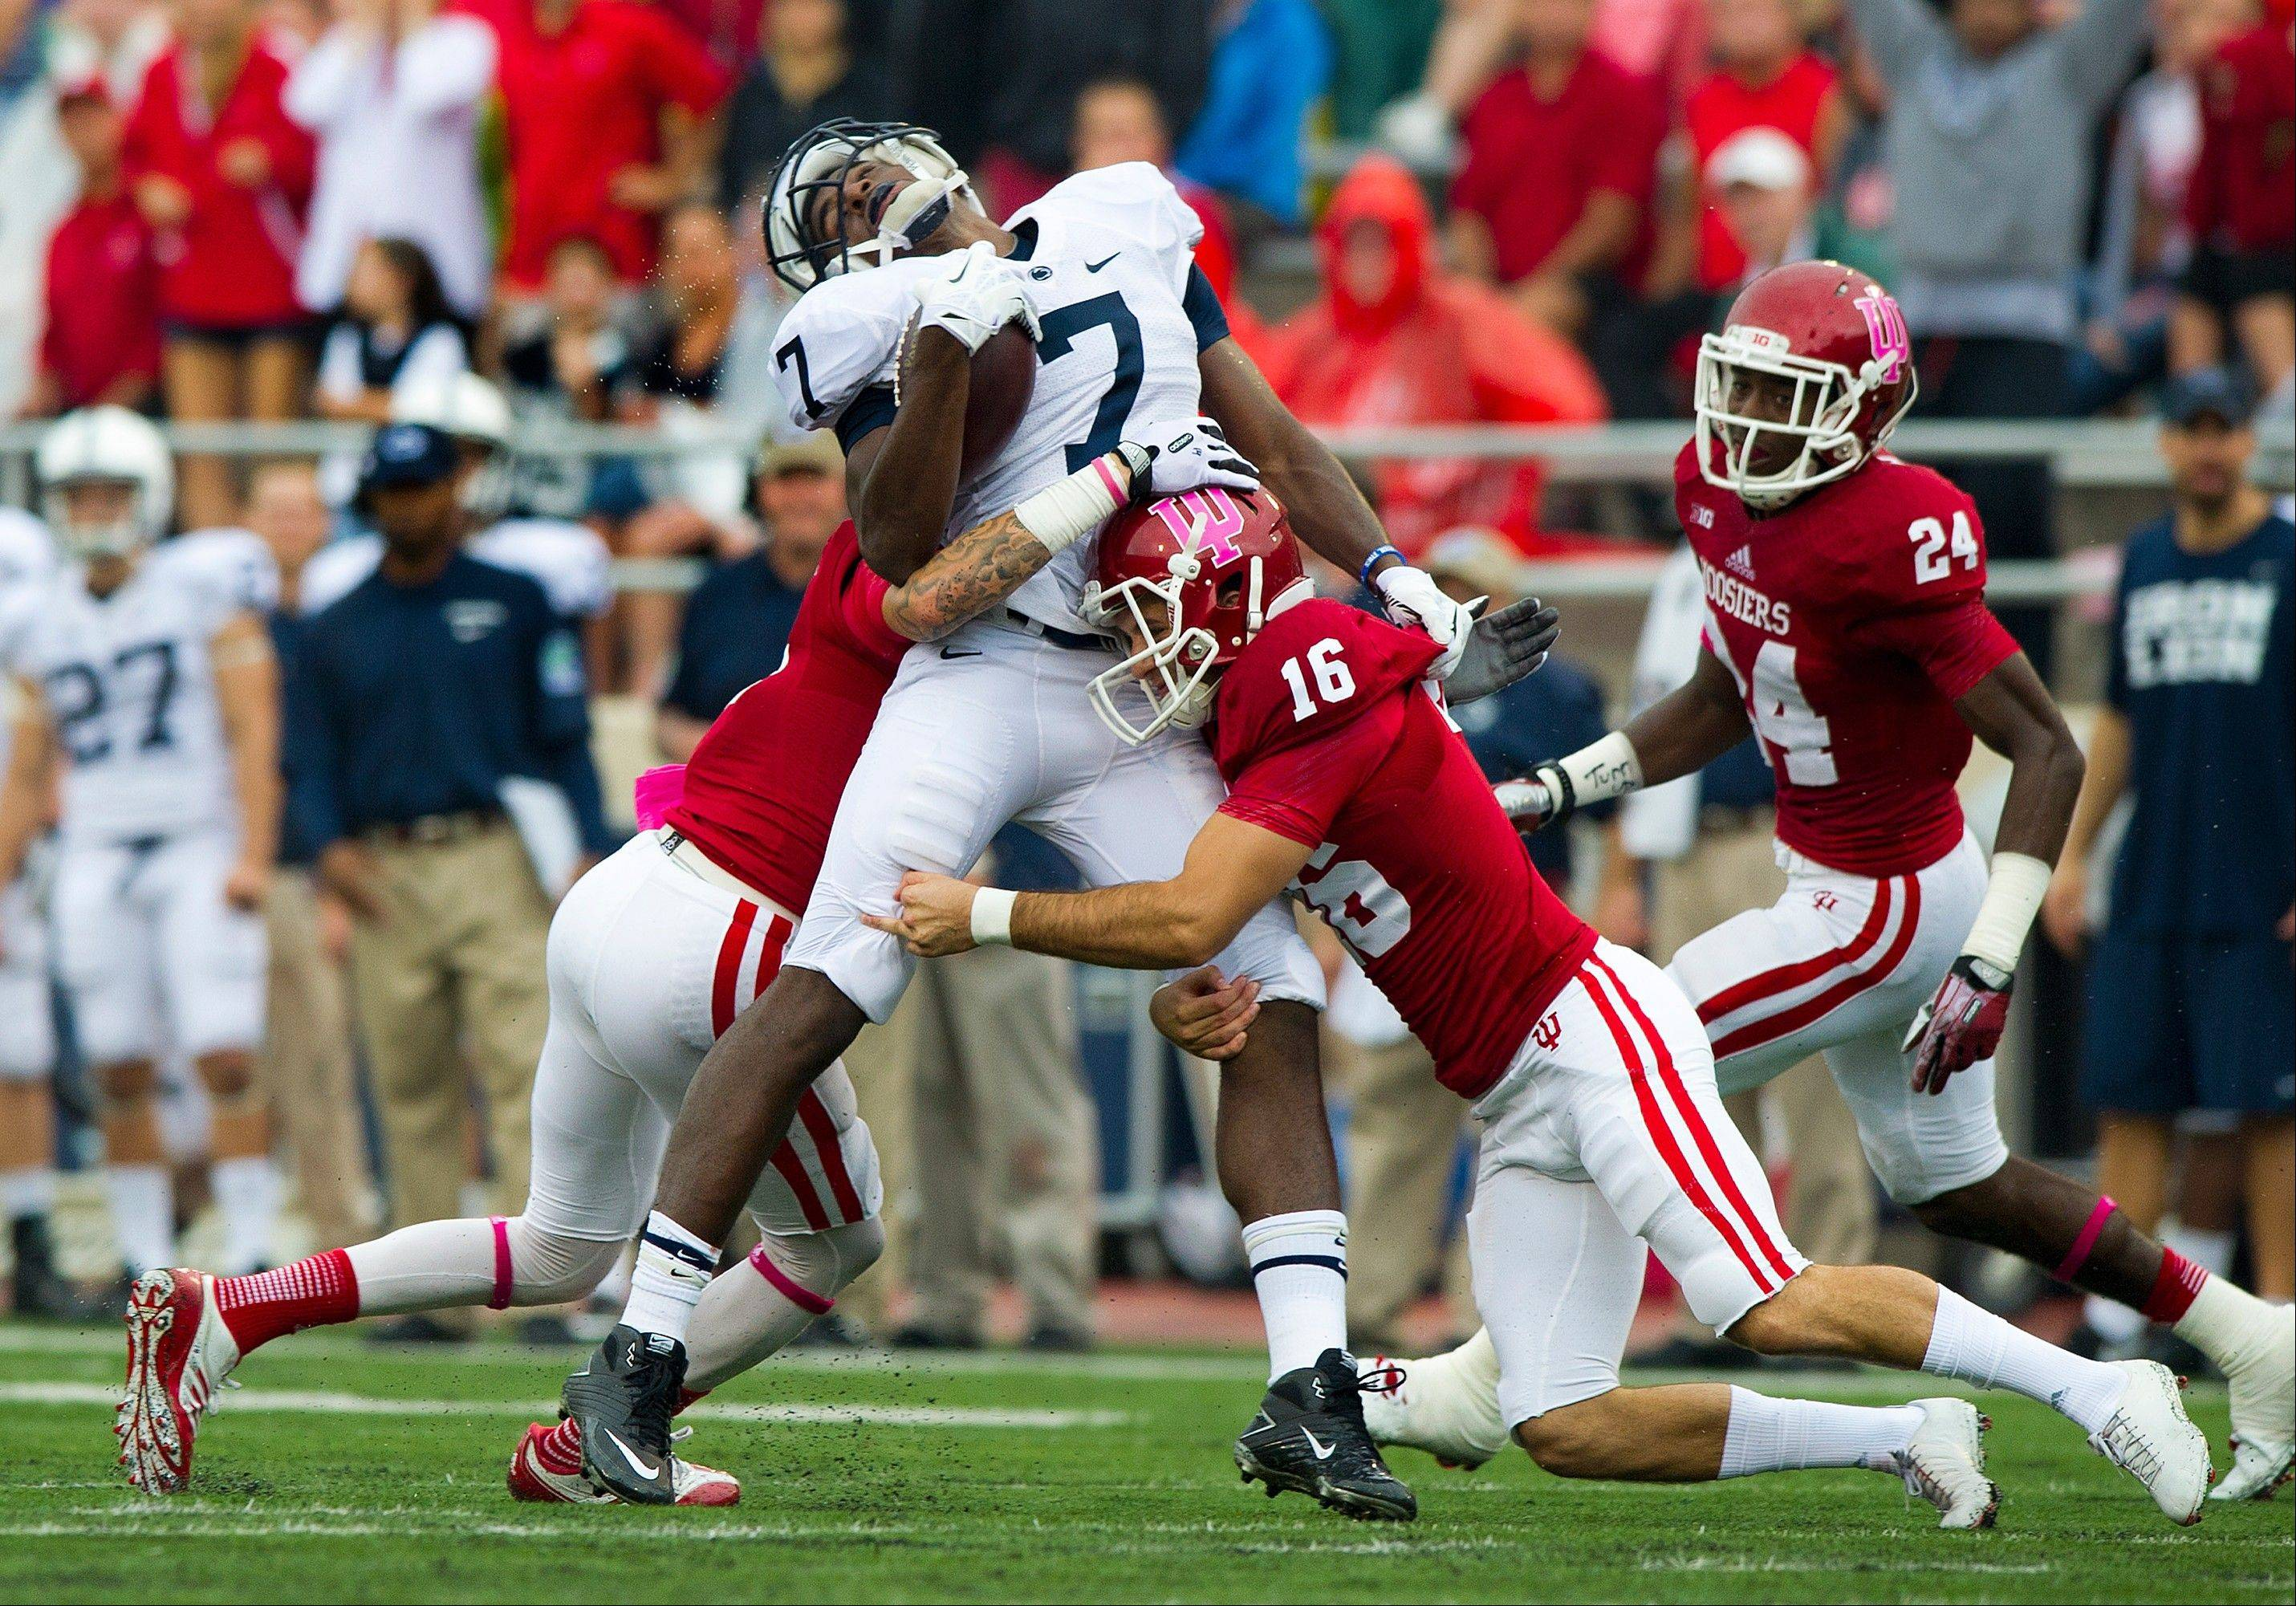 Penn State's Geno Lewis (7) is hit by Indiana's Rashard Fant (16) and Tim Bennett (24) after a pass reception during the first half of an NCAA college football game, Saturday, Oct. 5, 2013, in Bloomington, Ind.